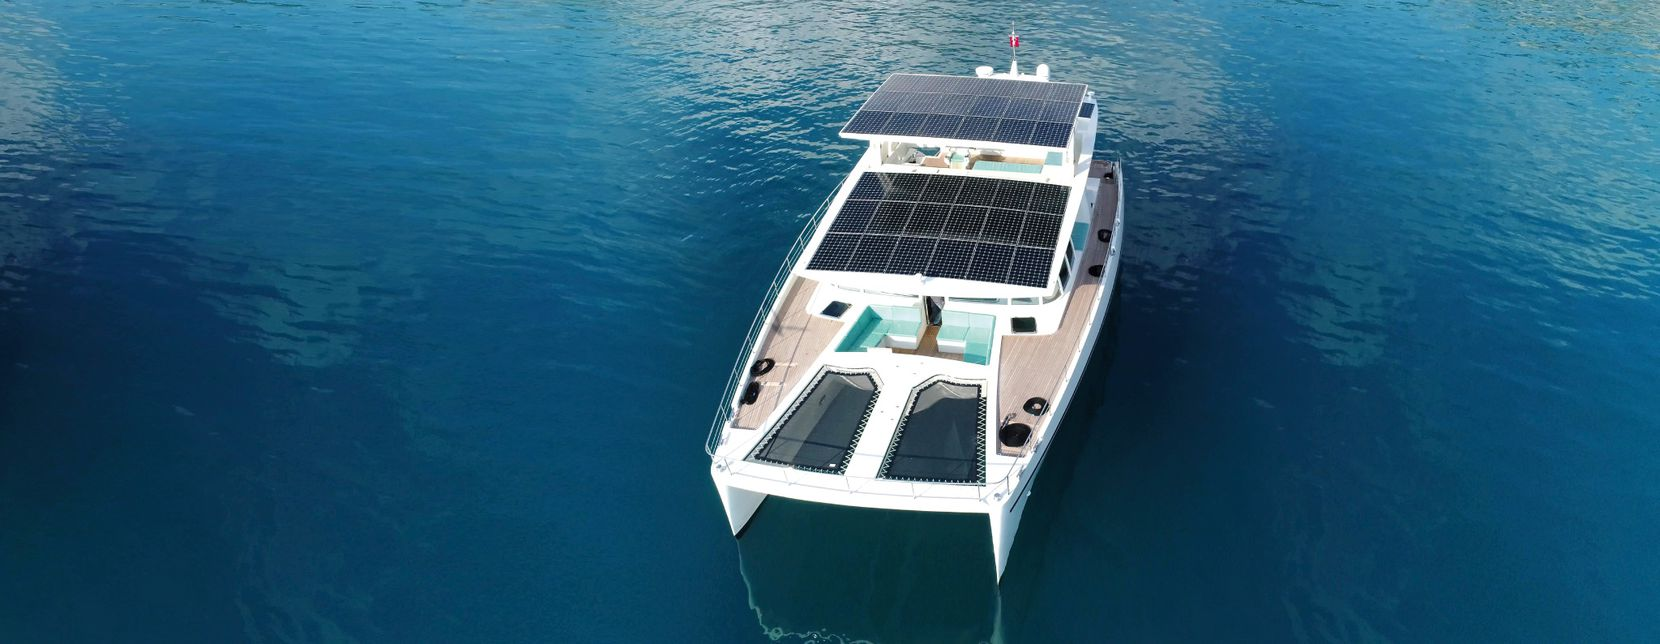 With three levels and four main cabins, this solar yacht sleeps up to 12 people, including a crew of four.